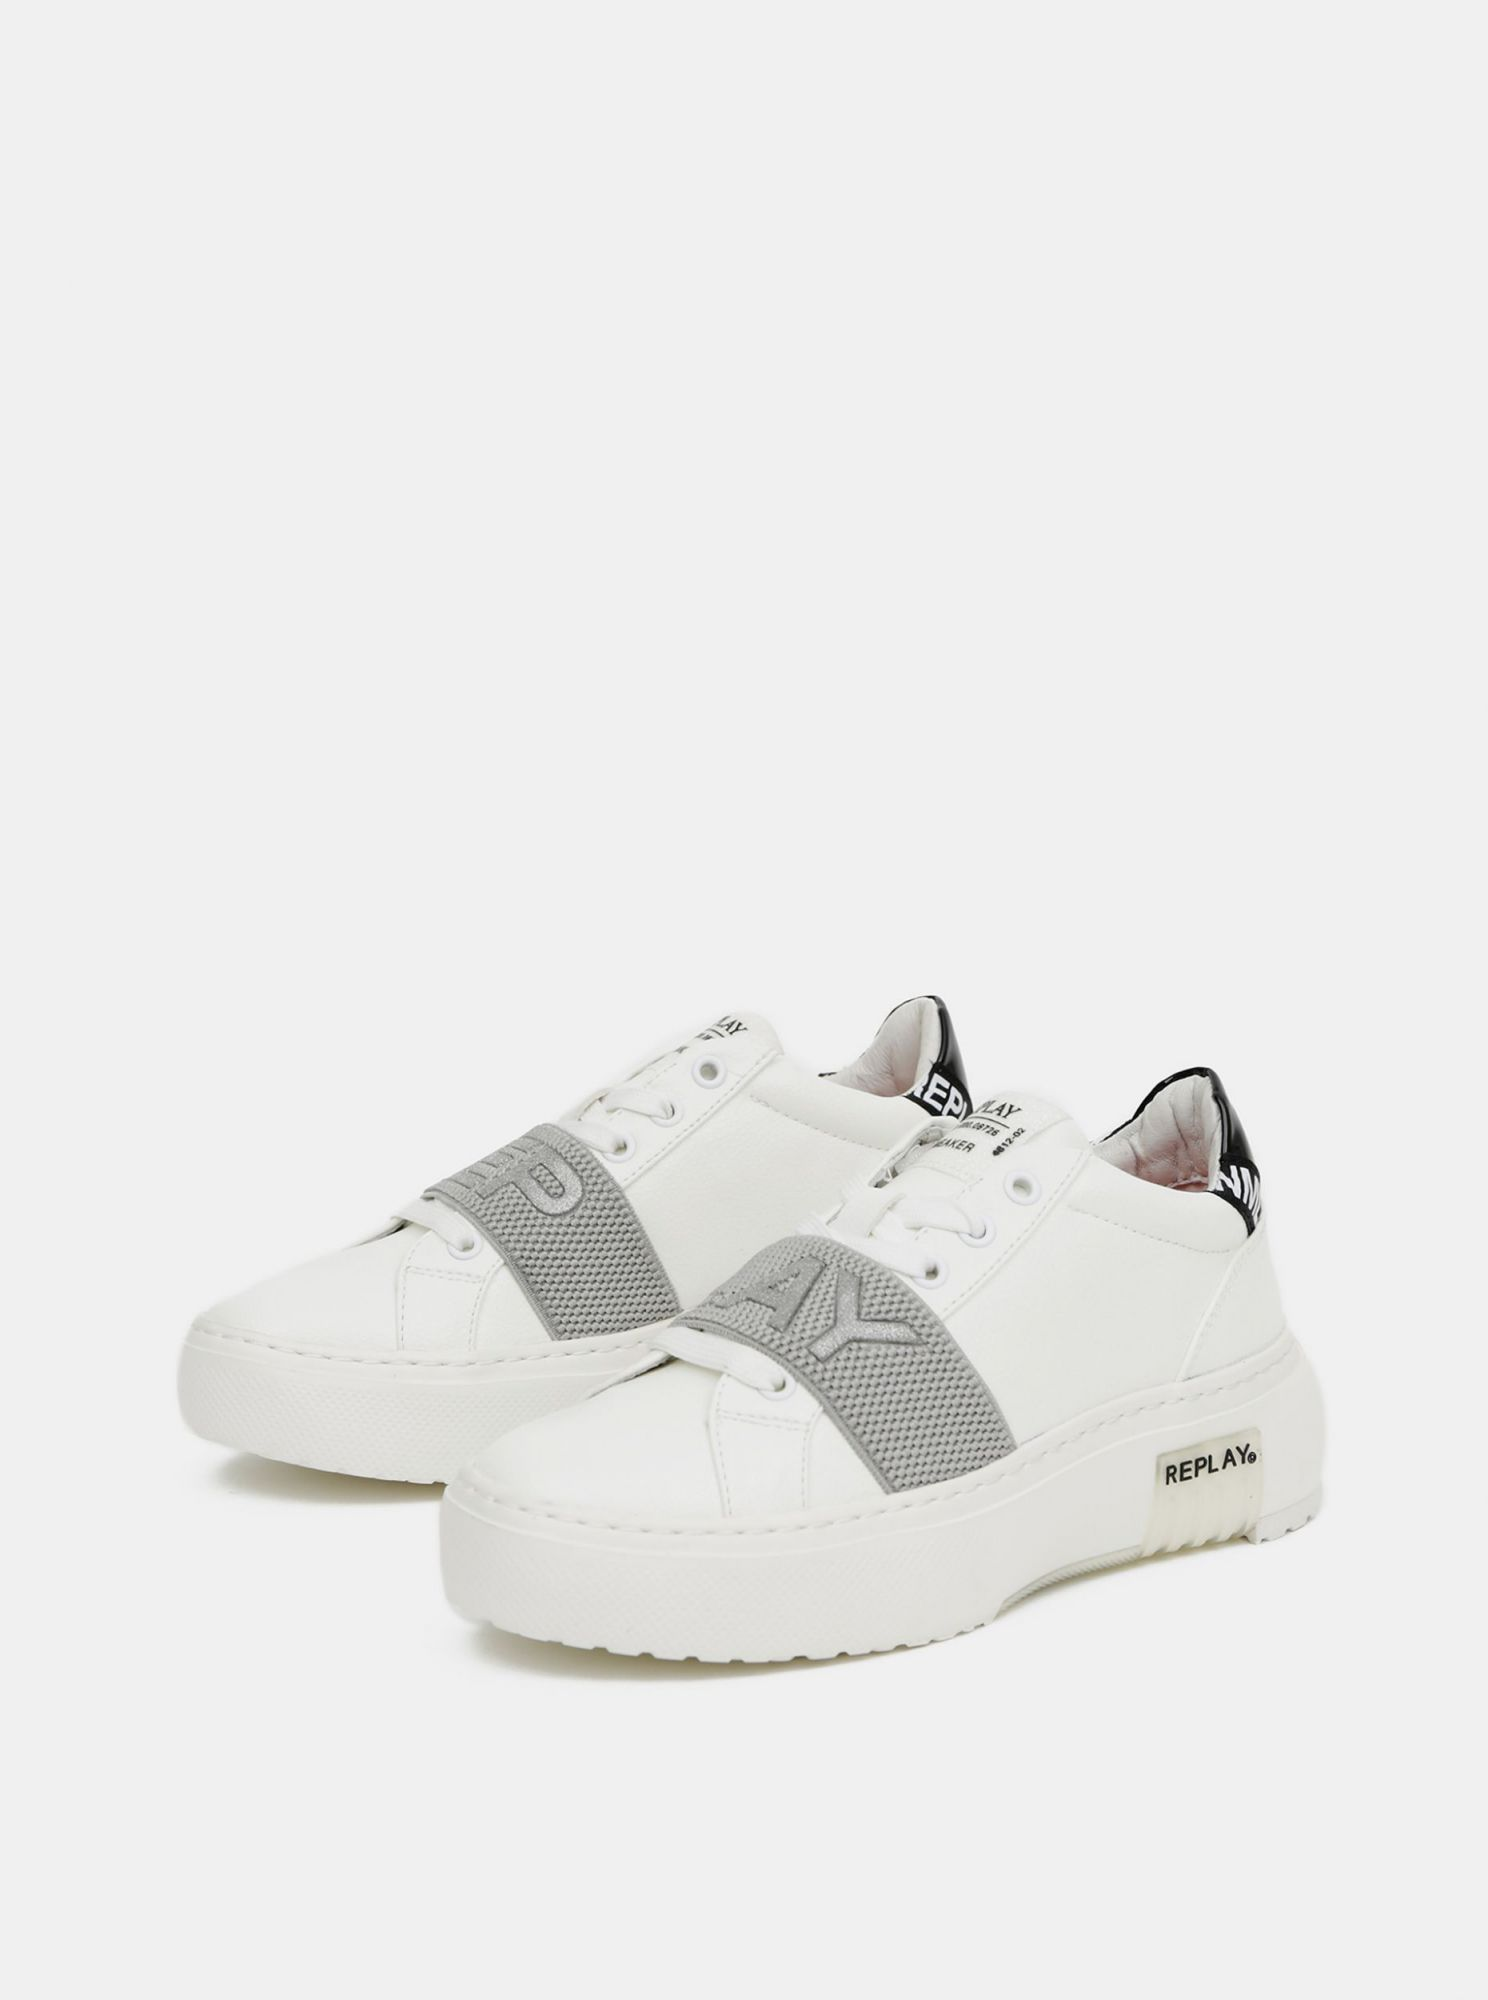 White women\u0026#39;s sneakers on the